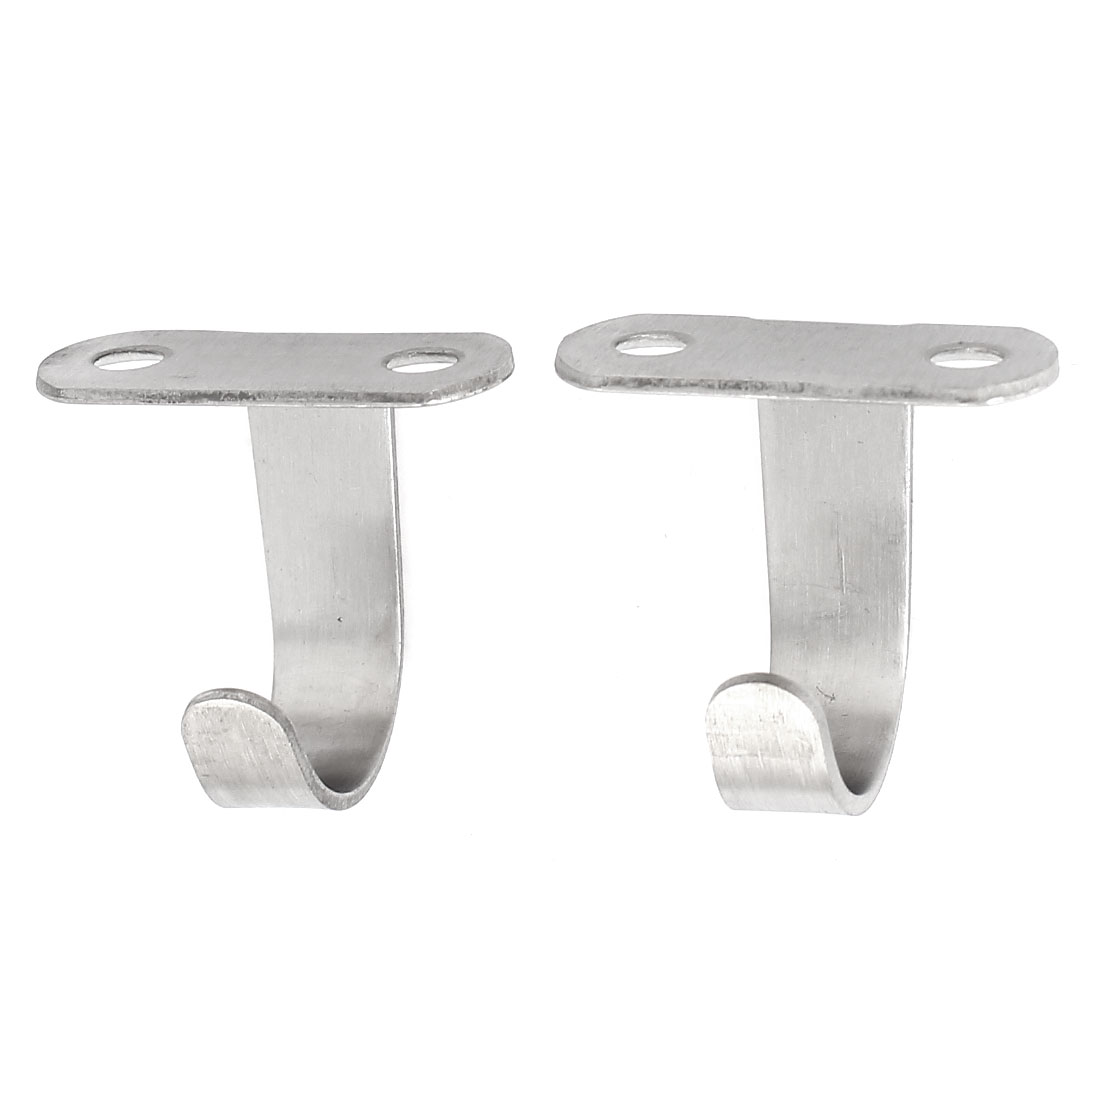 Clothes Bag Coat Cabinet Top Mount Stainless Steel Wall Hooks Hangers 2pcs